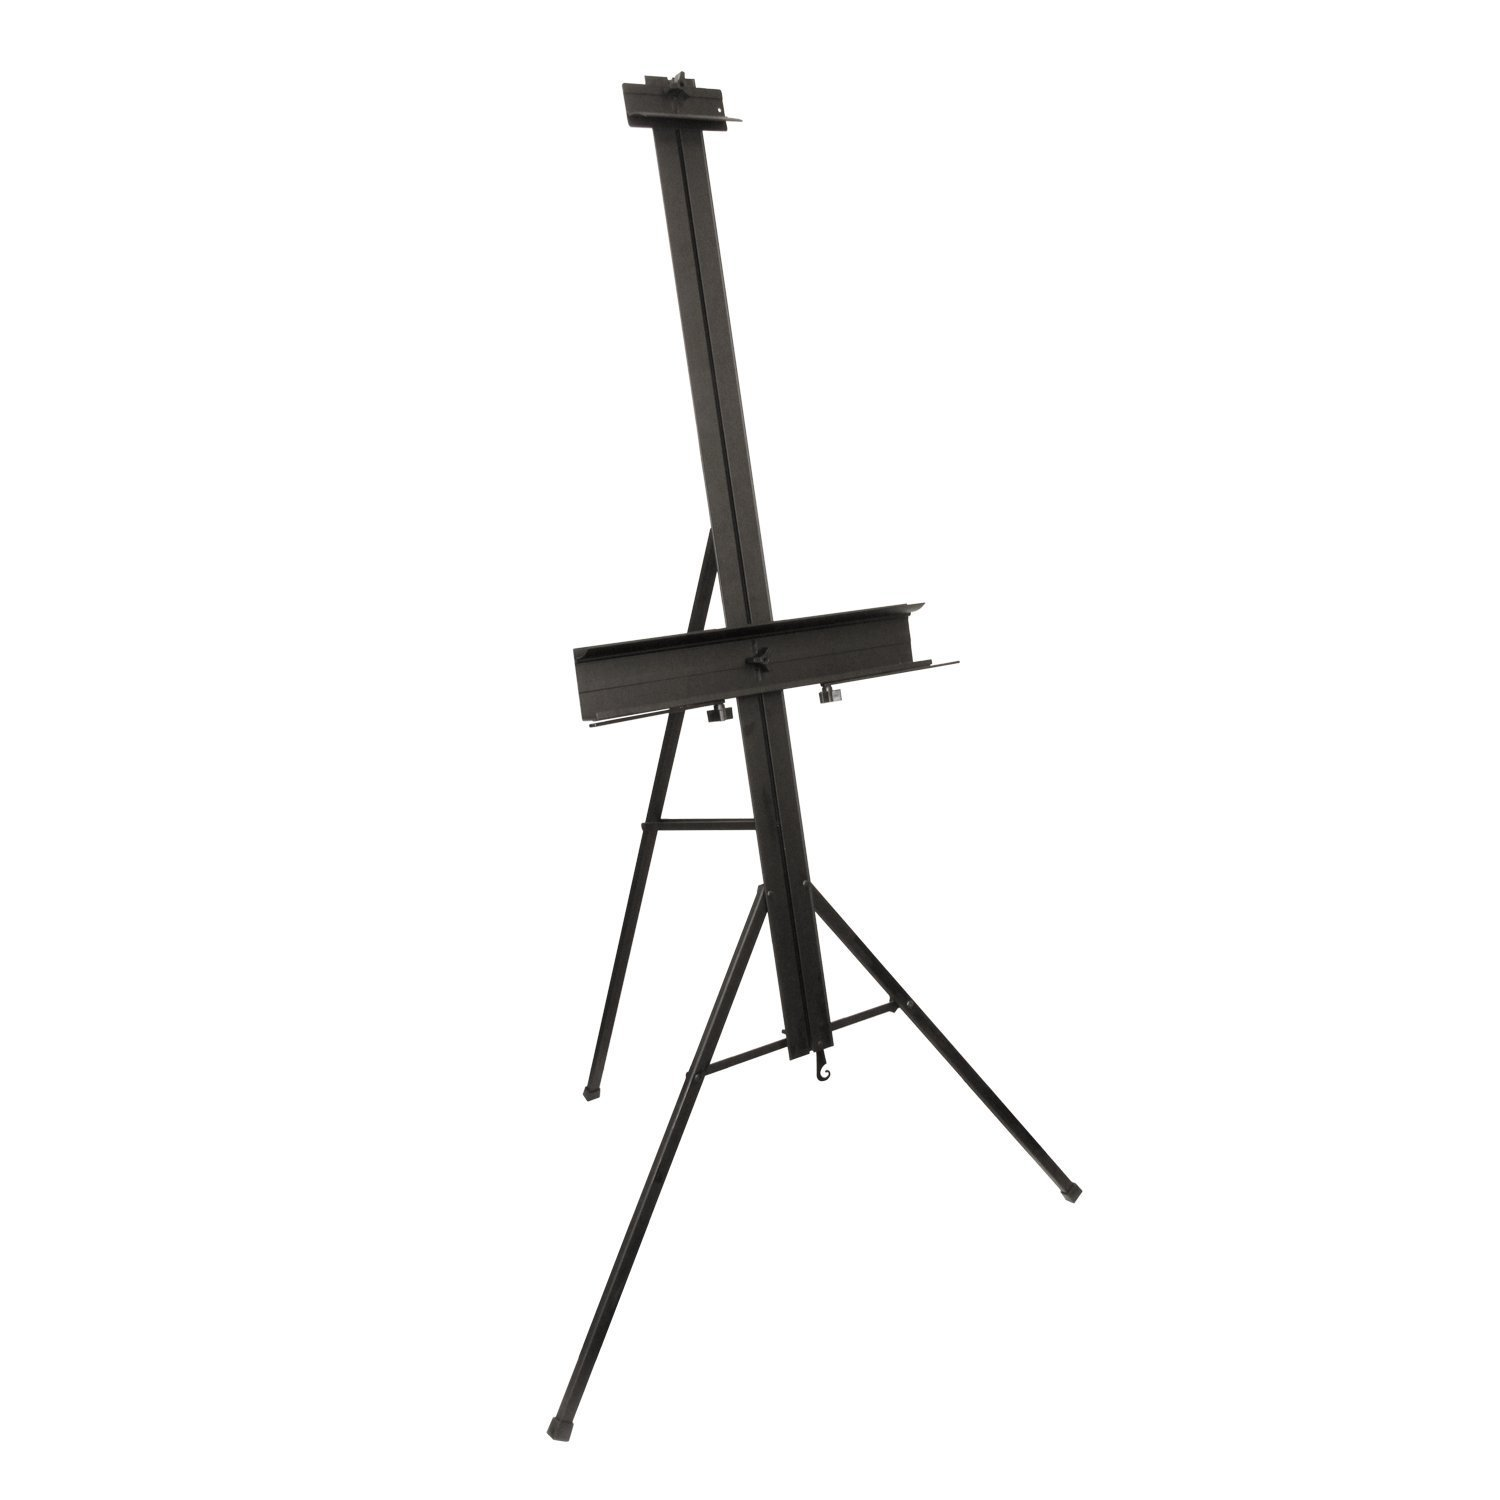 Del Mar Aluminum Light Weight Studio Easel with Adjustable Tray & Palette Holder US Art Supply E-308